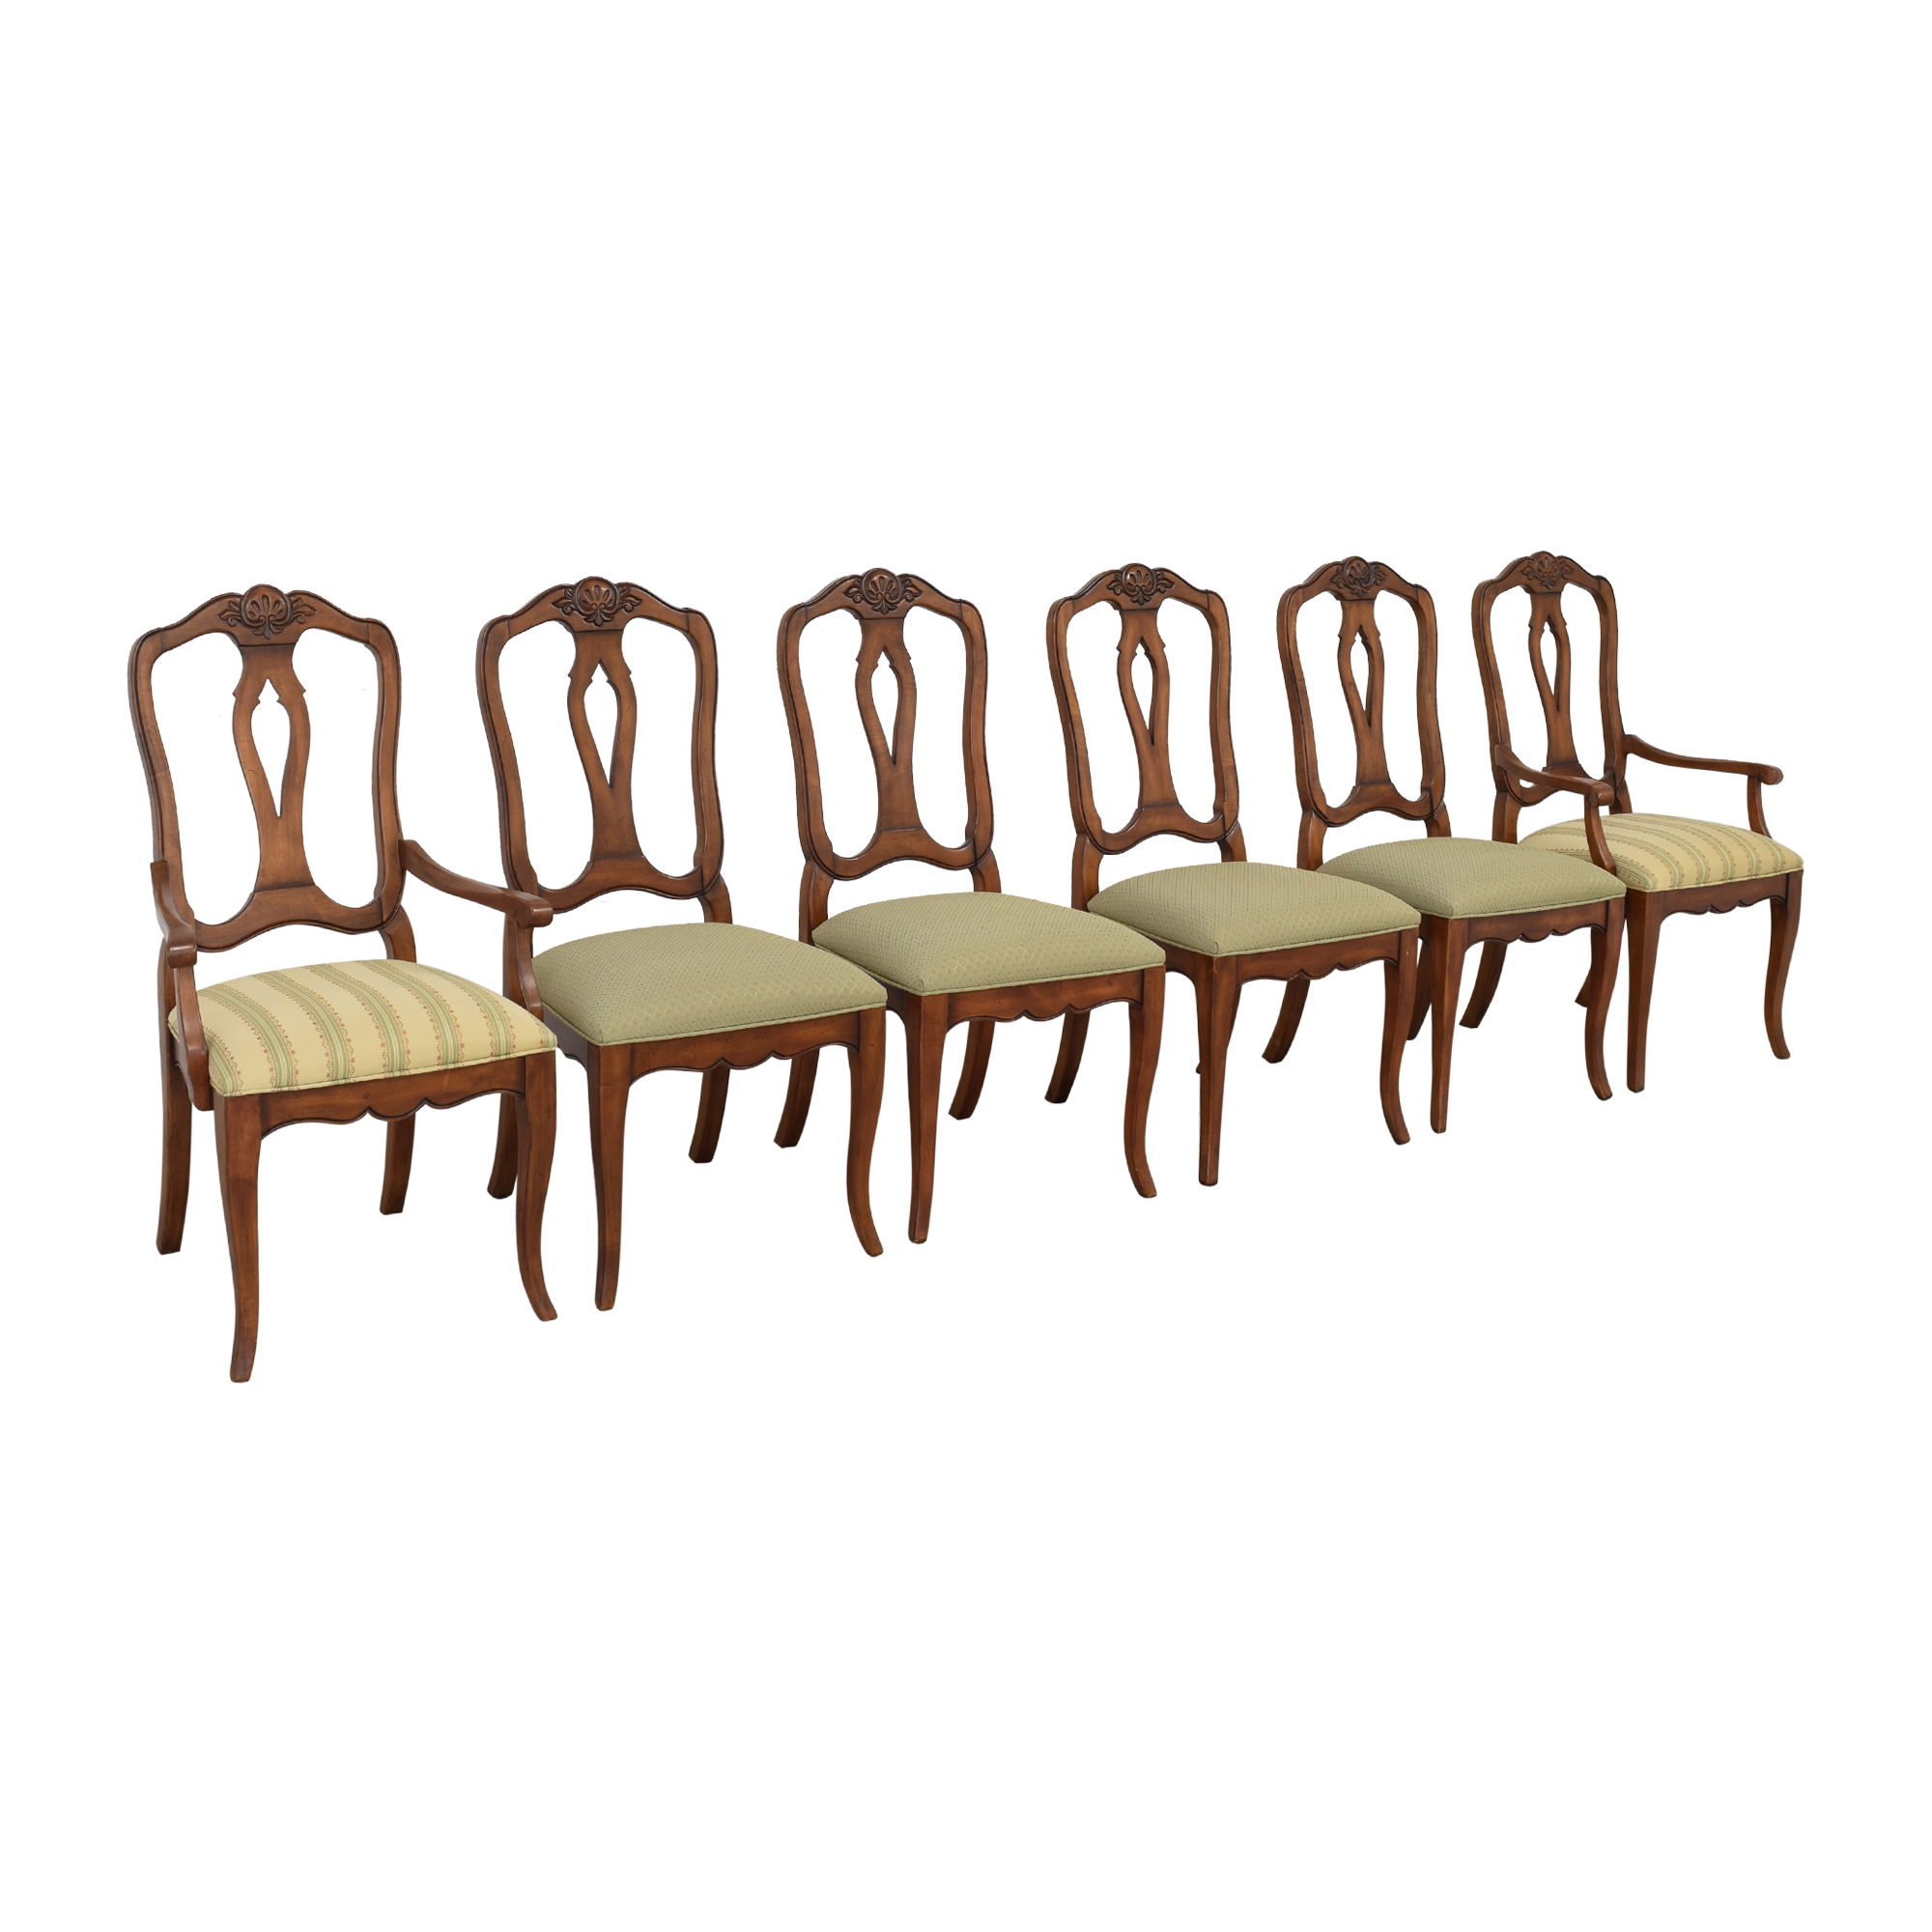 Ethan Allen Ethan Allen Country French Dining Chairs used